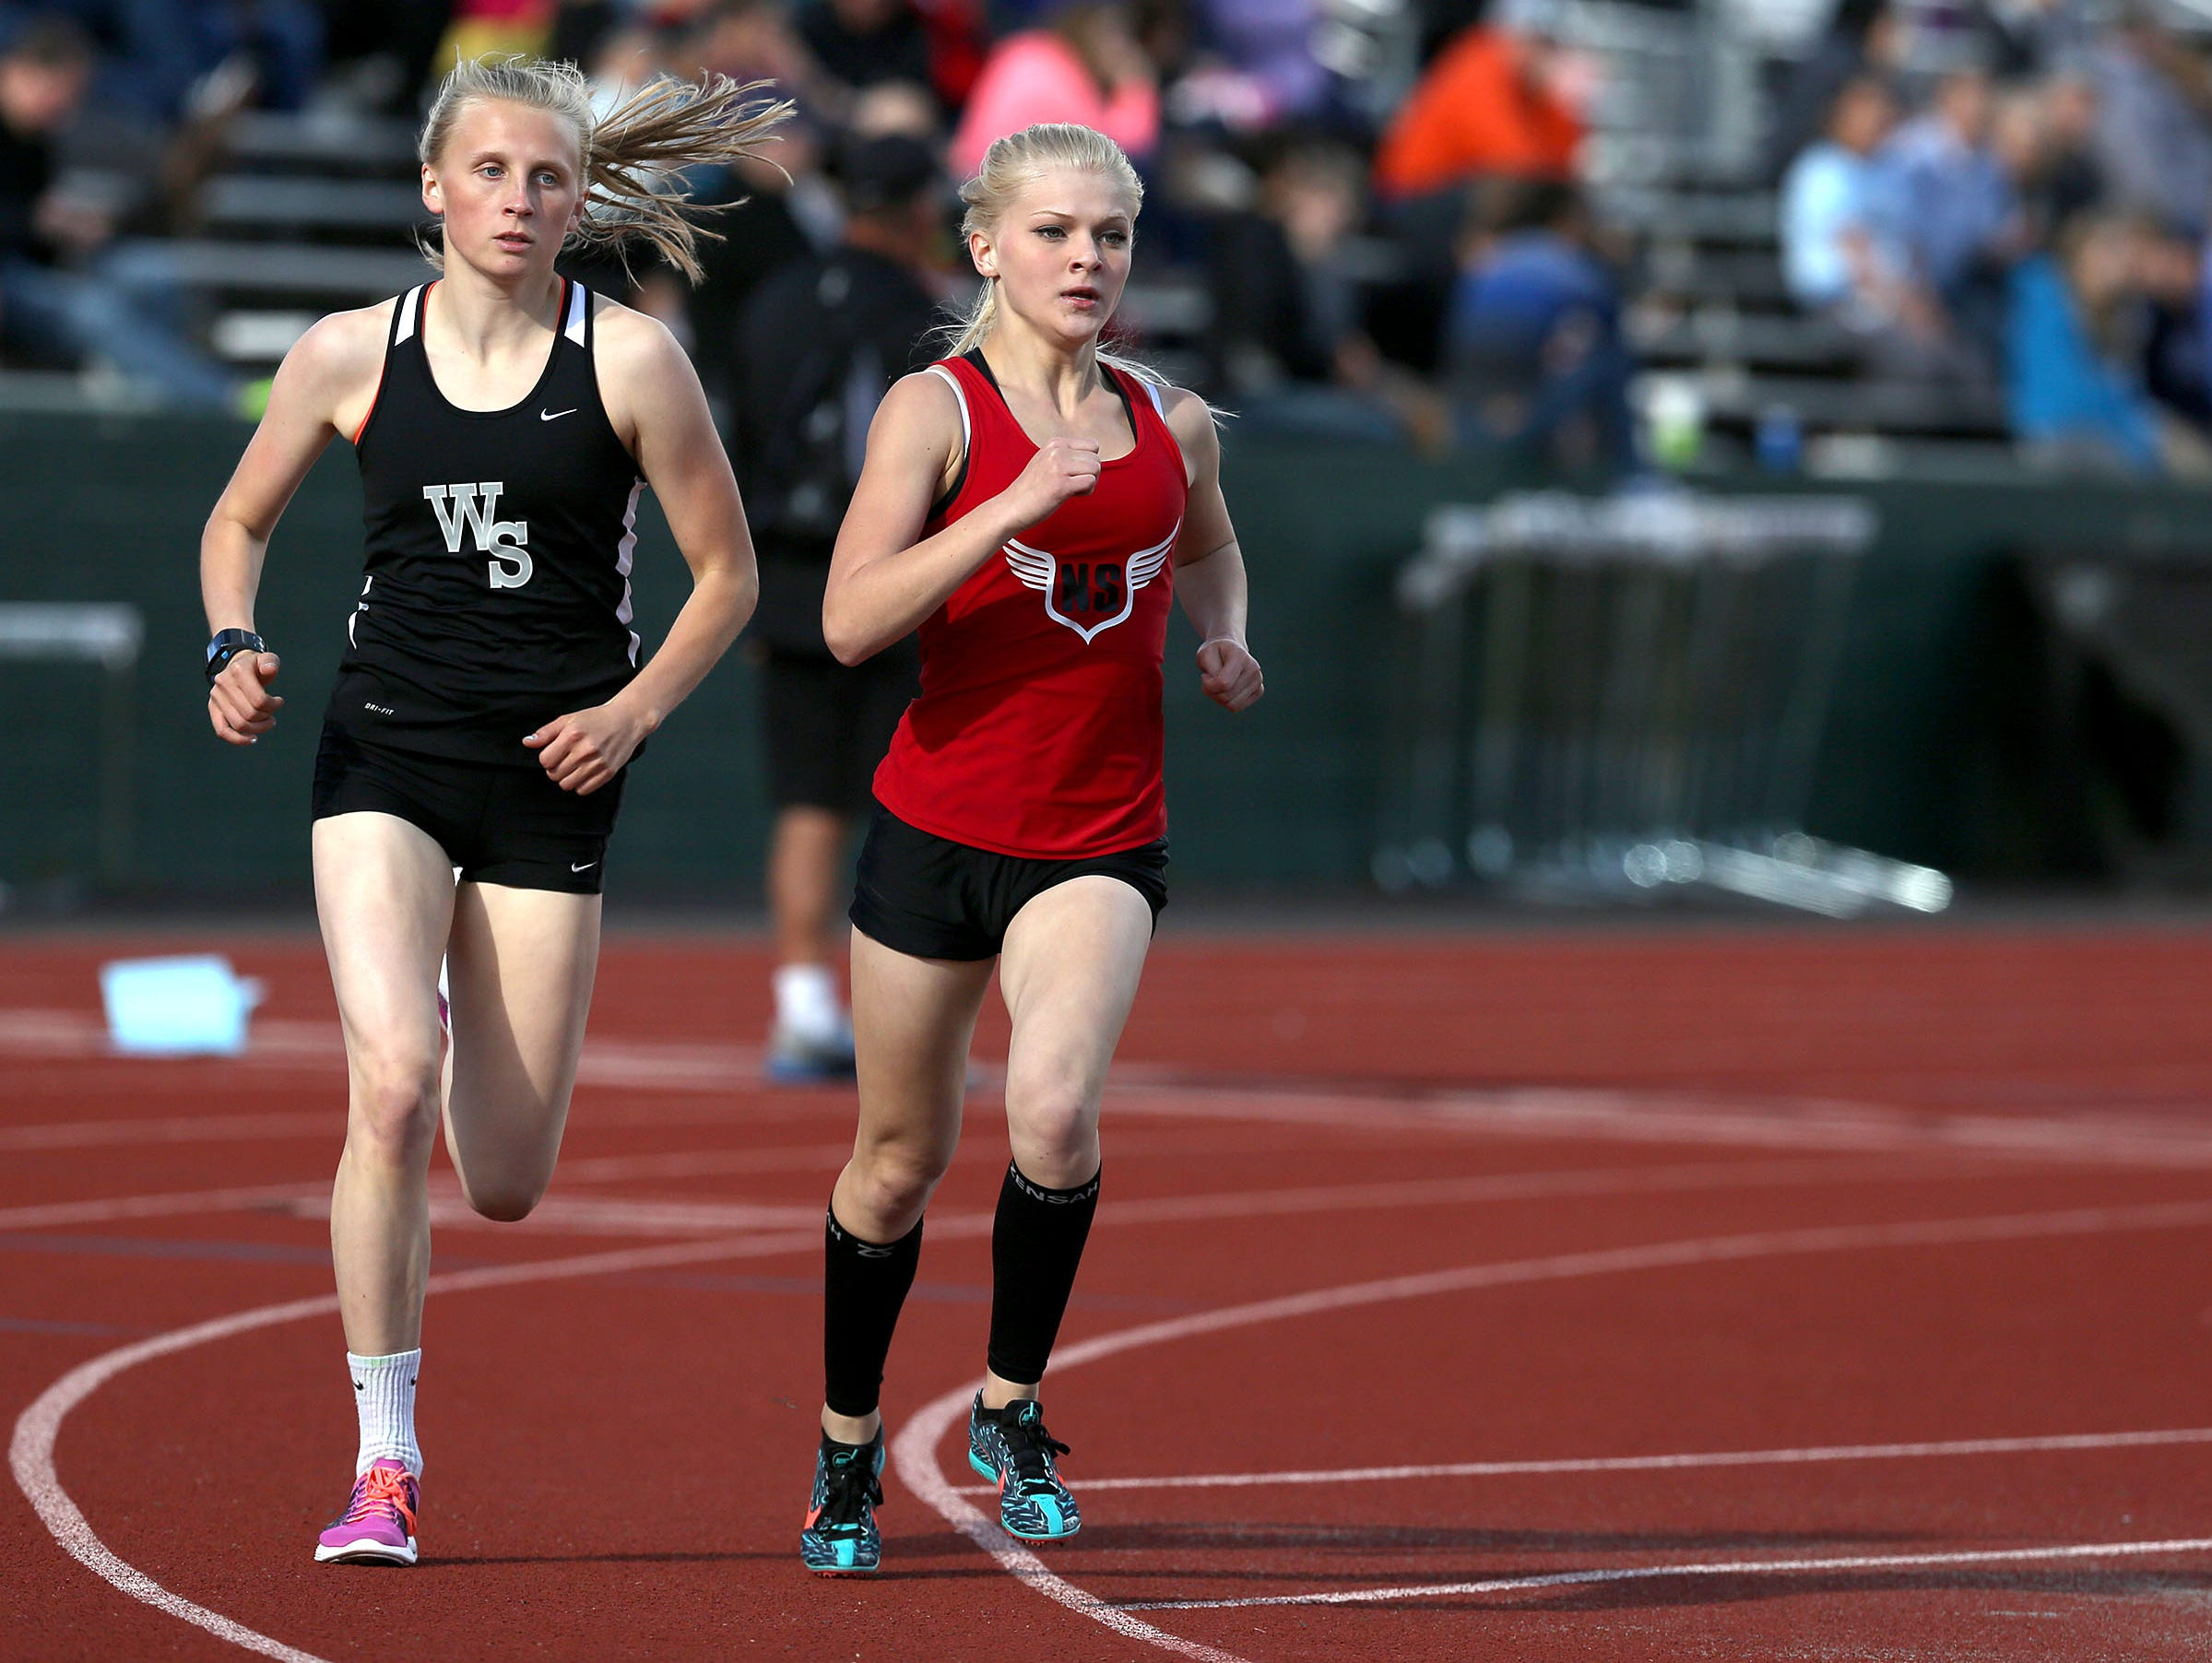 West Salem High school's Brooke Chuhlantseff, left, and North Salem's Madison Willhoft compete in the 1,500 meter race during a Greater Valley Conference meet on Wednesday, May 6, 2015, in Salem, Ore.